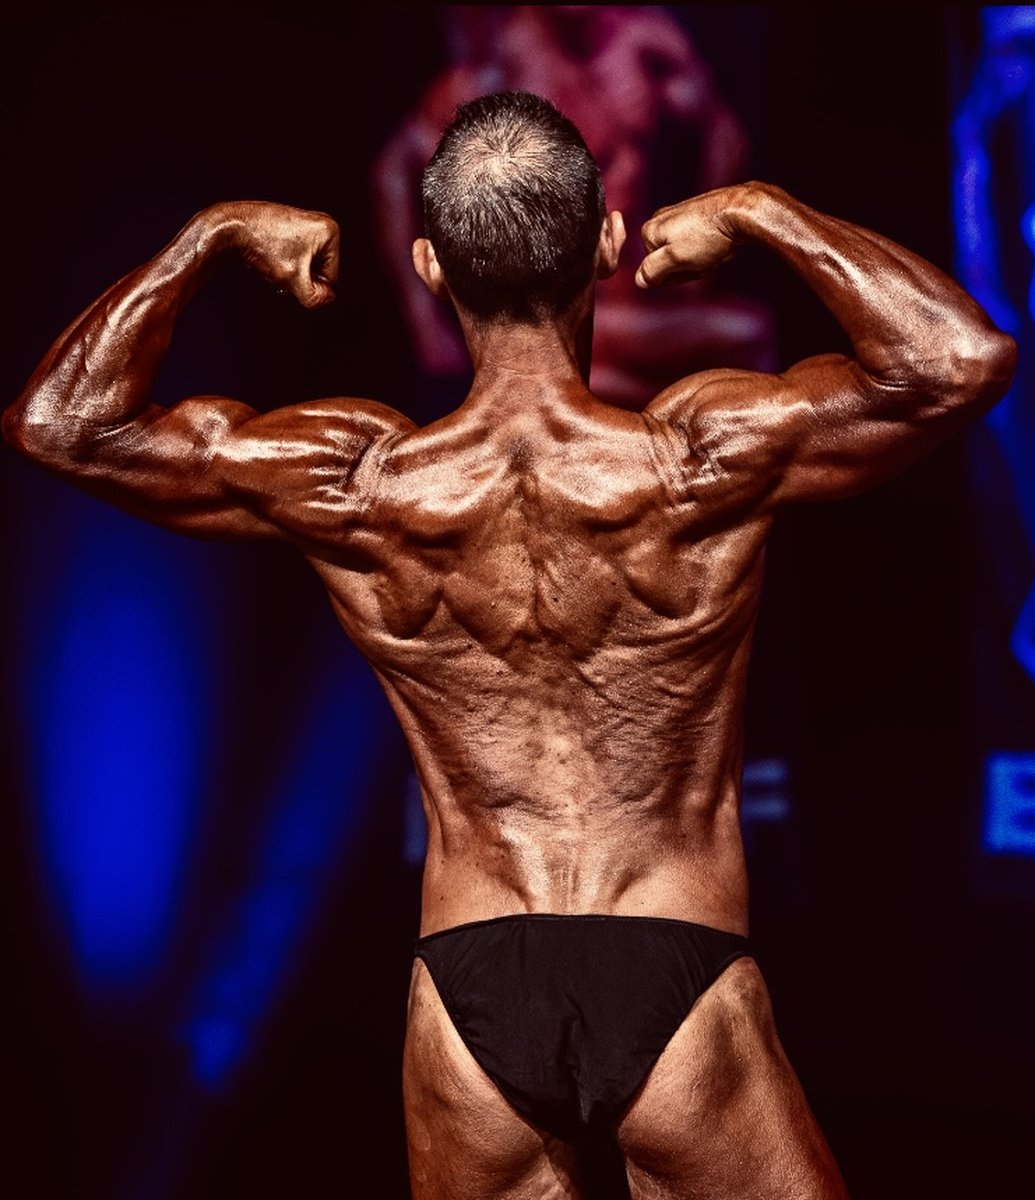 Image of Tim poses at the 2019 BNBF Central Contest on his way to collect 3<sup>rd</sup> spot in the Over 50s category.